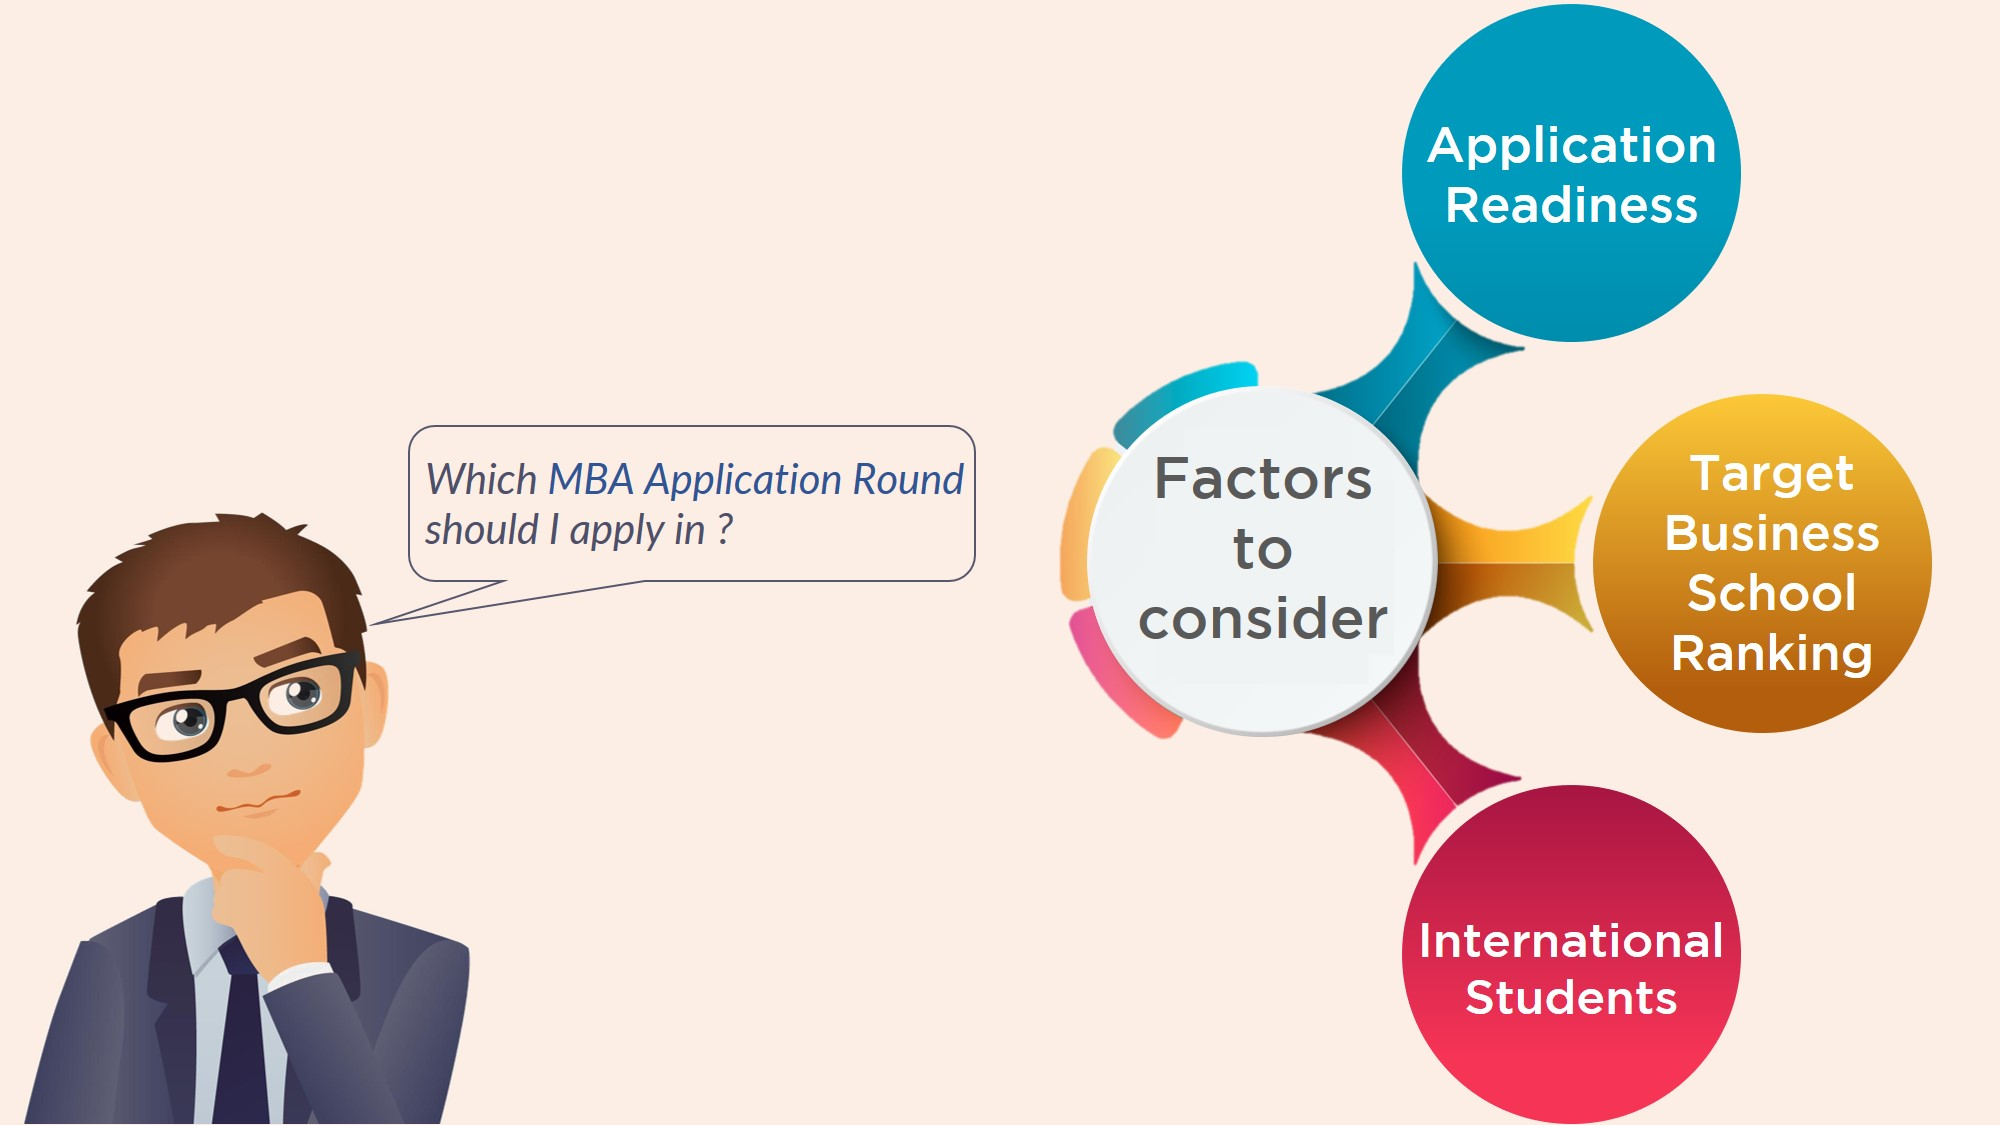 Round 1 vs Round 2 – Which MBA Application Round should I